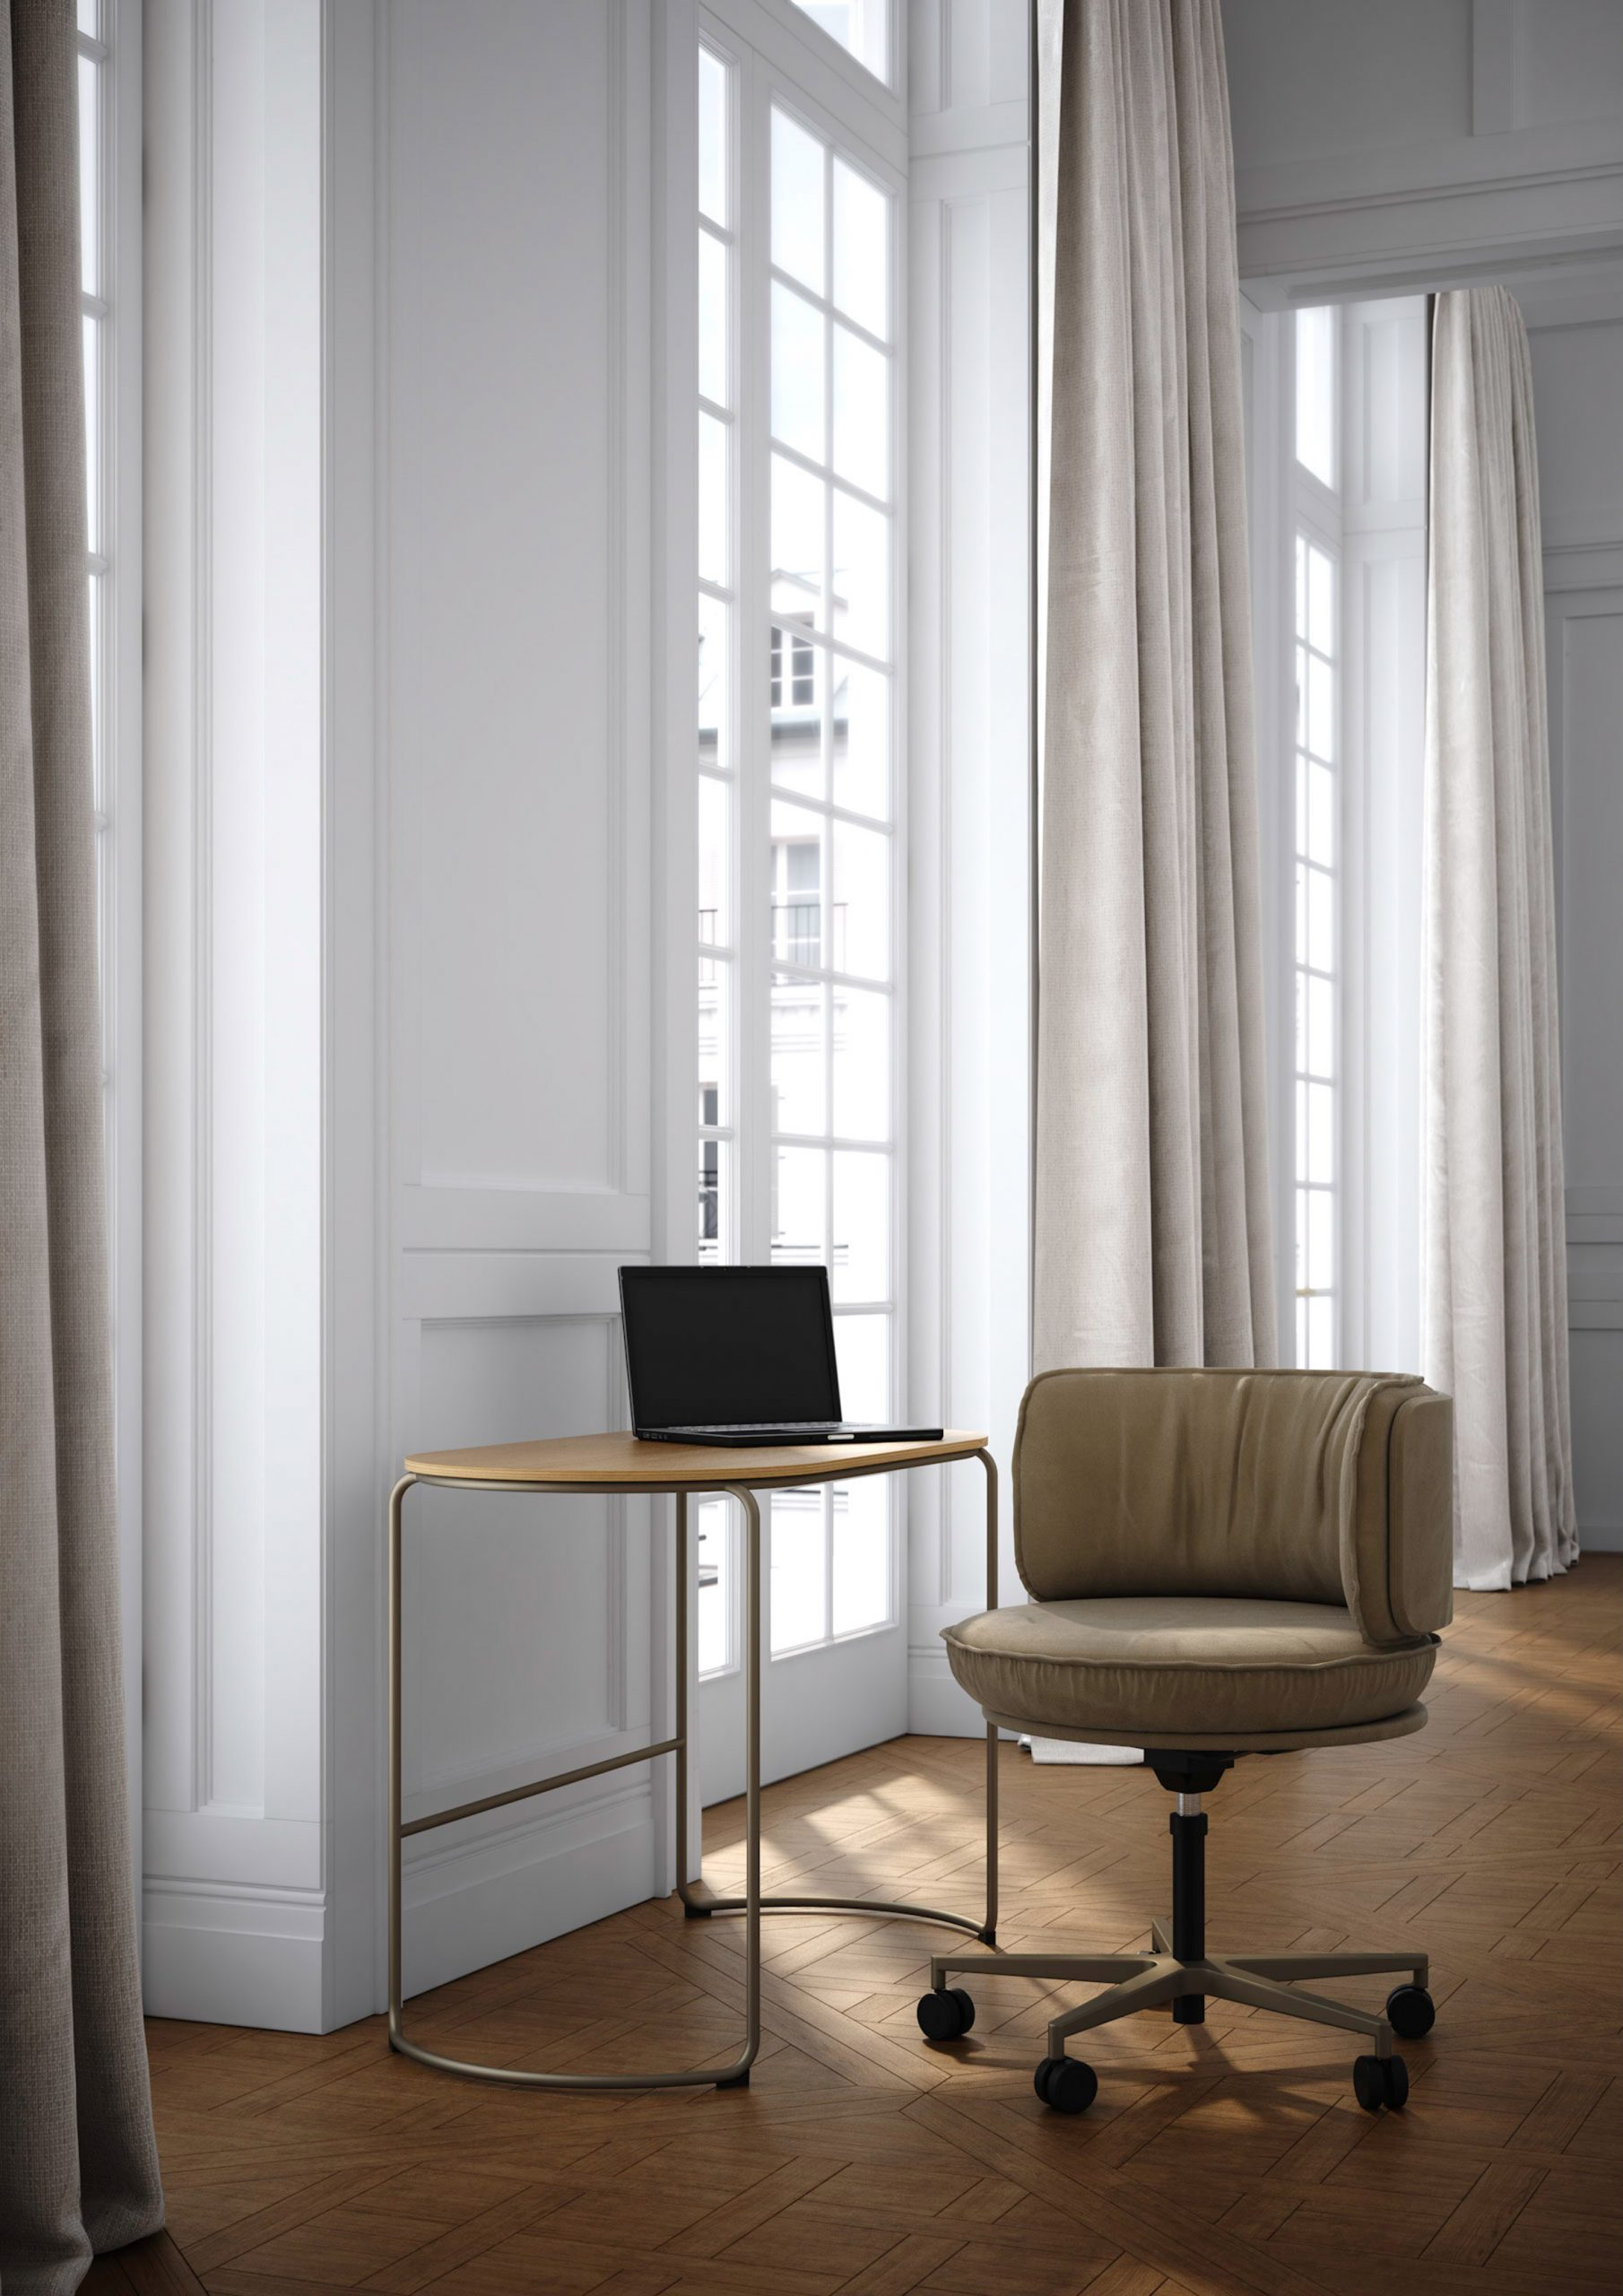 Ring armchair with castors on a five-pointed base by Vank in a discreet home office